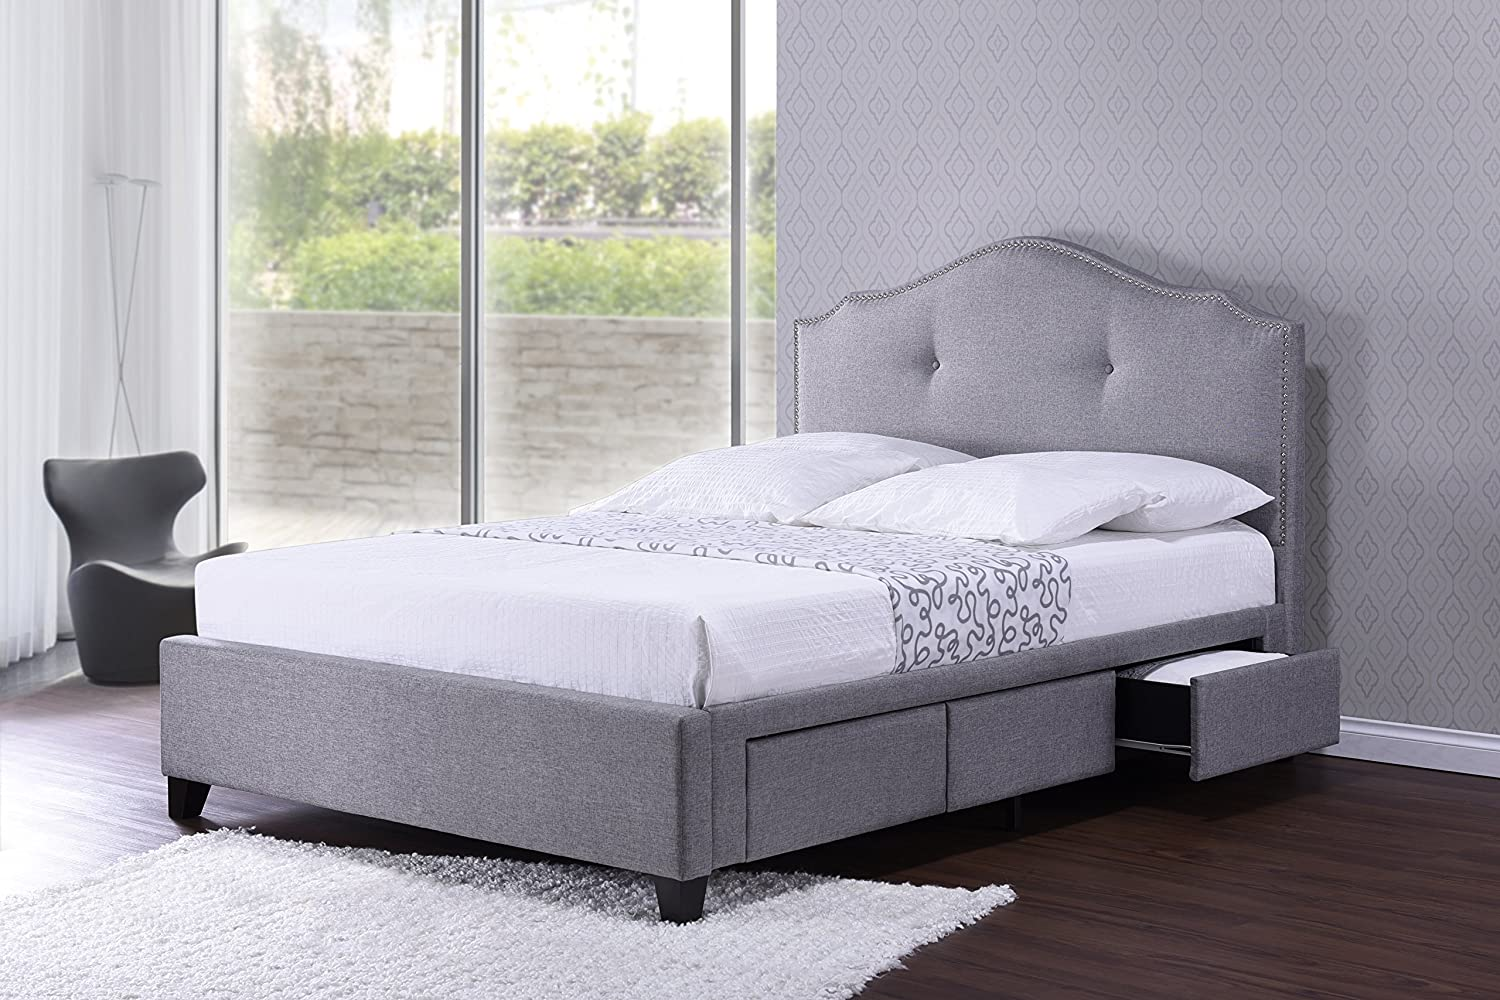 Amazon.com: Baxton Studio Armeena Linen Modern Storage Bed with ...